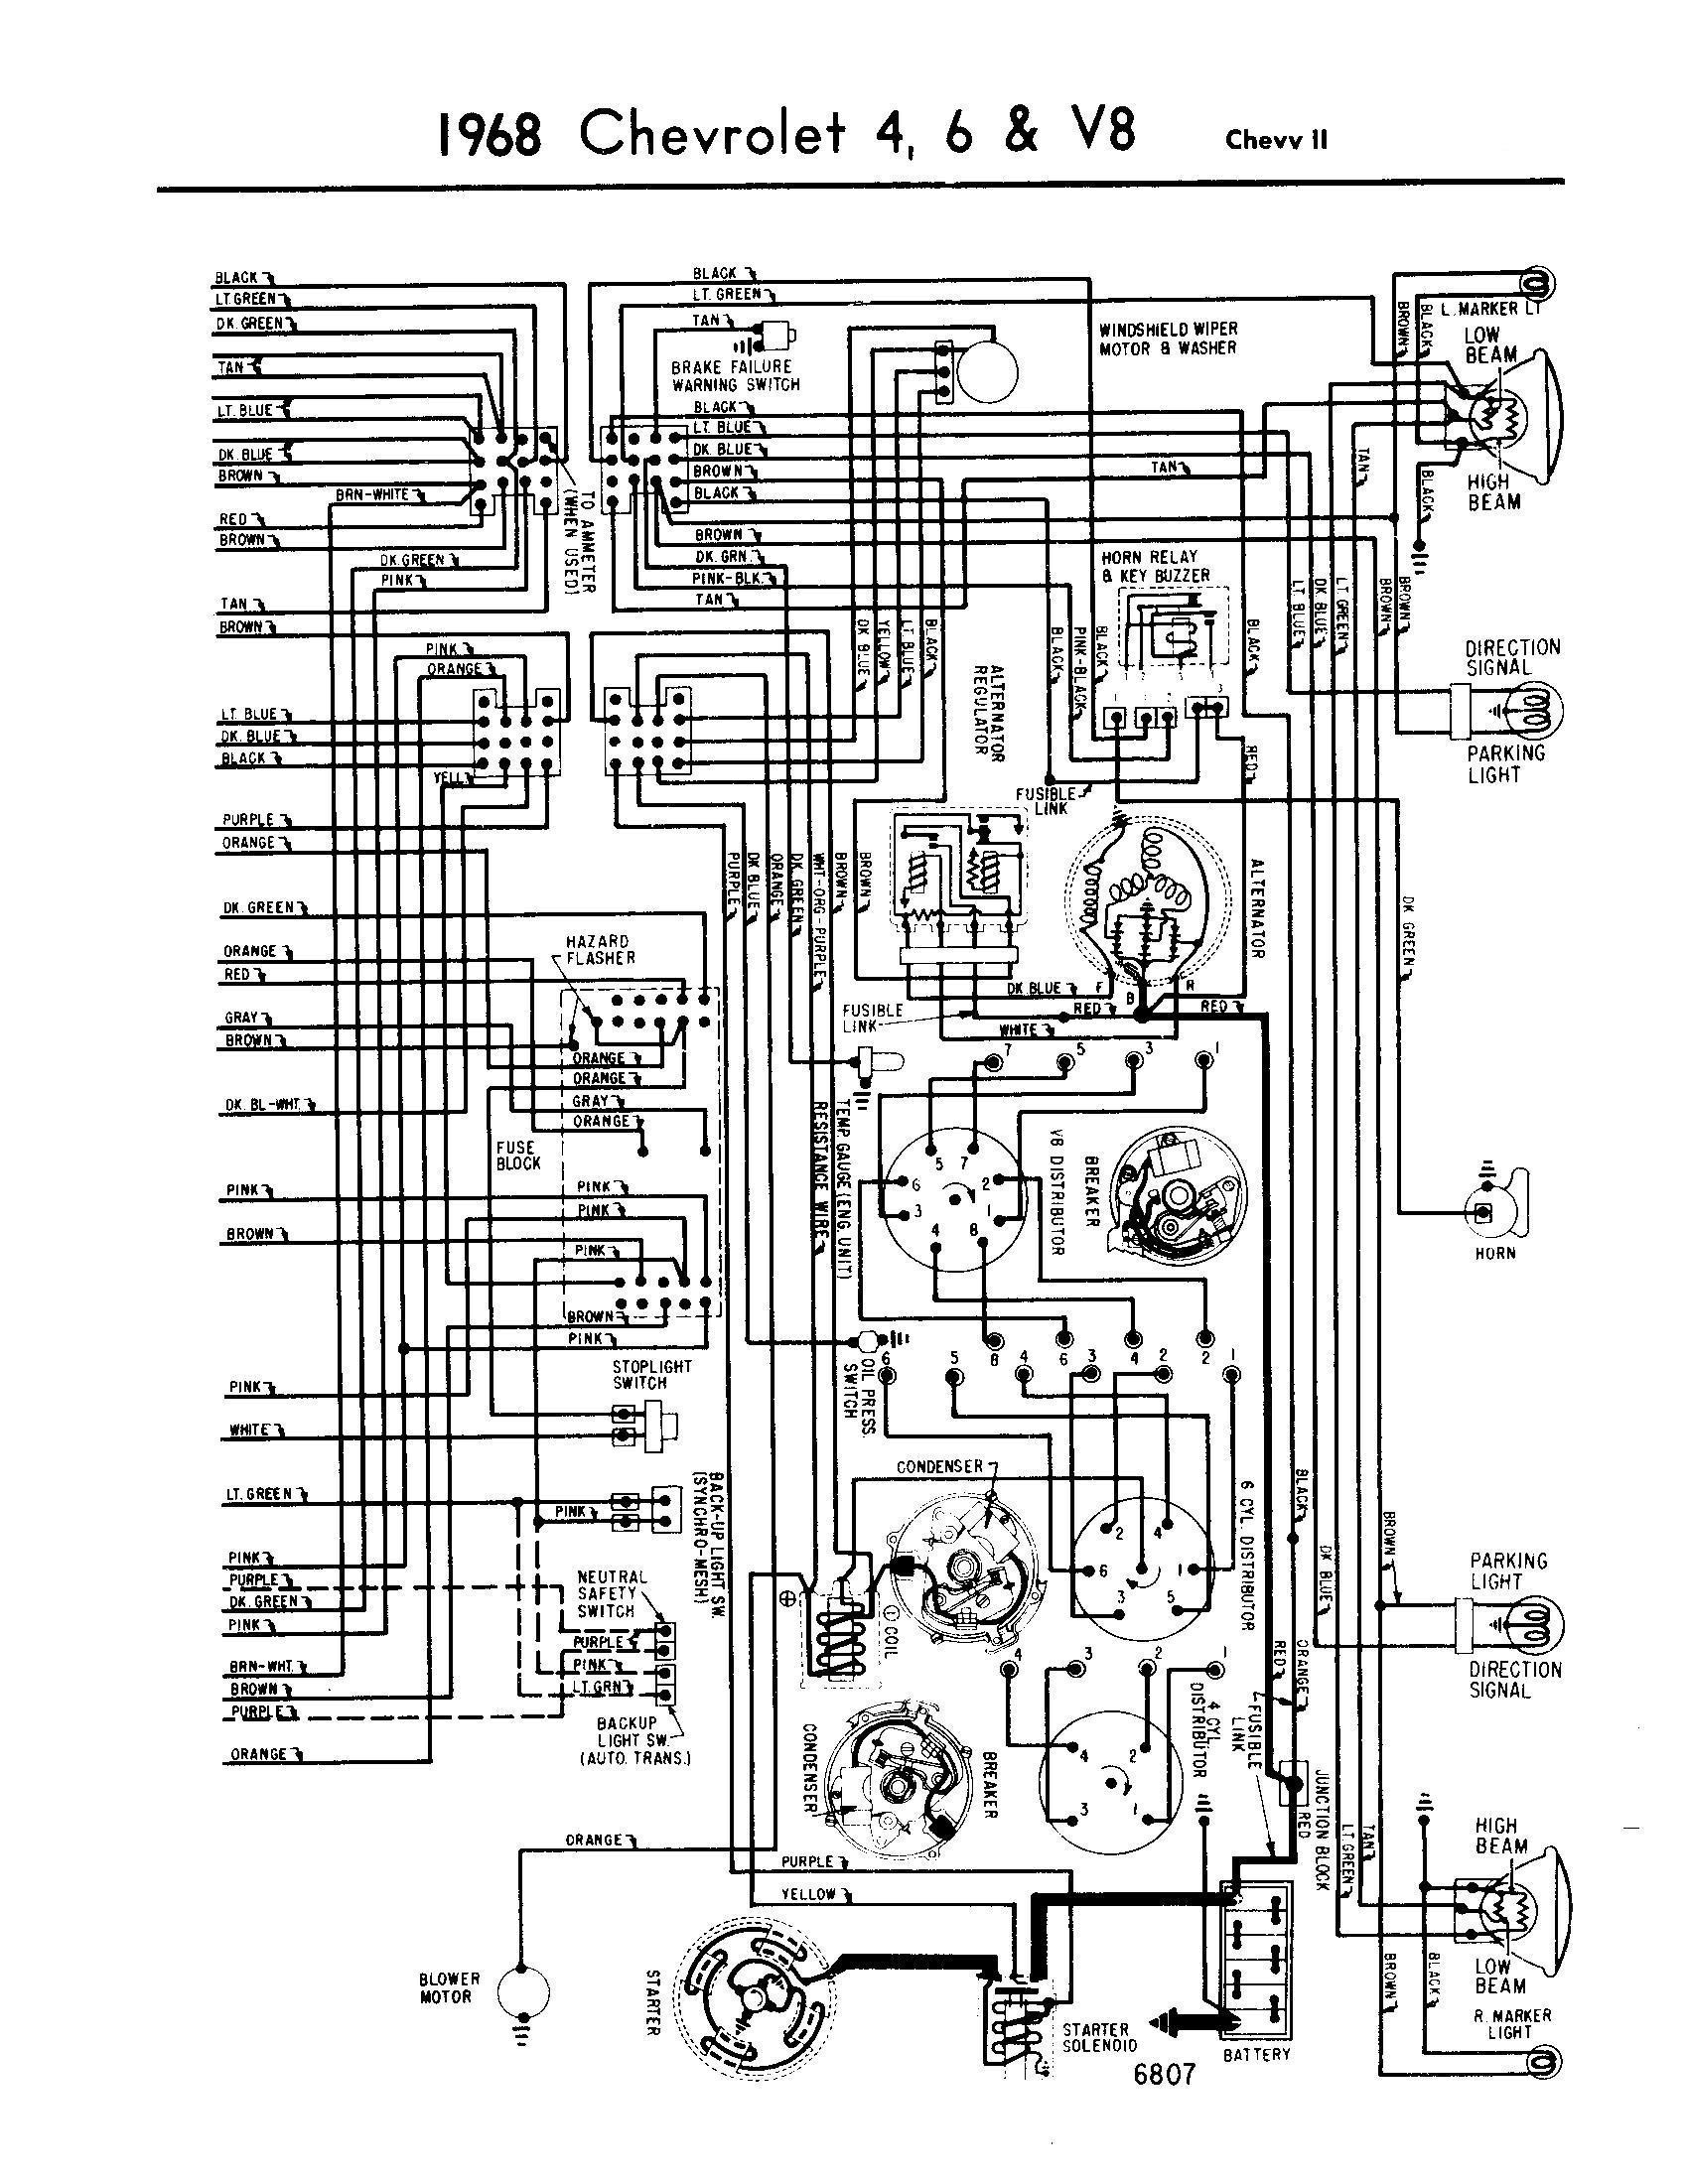 72 chevelle wiring harness trusted schematics wiring diagrams u2022 rh bestbooksrichtreasures com